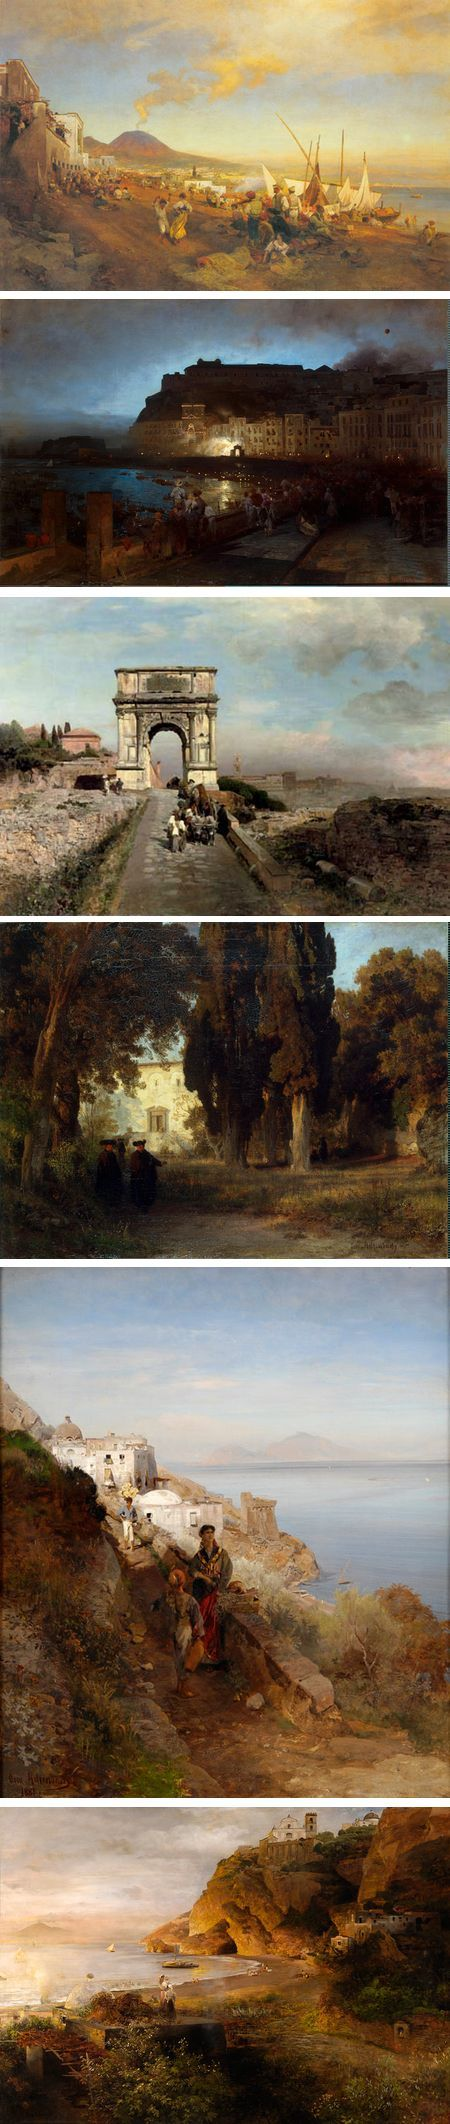 Oswald Achenbach was a 19th century German landscape painter who found his greatest inspiration in Italy.